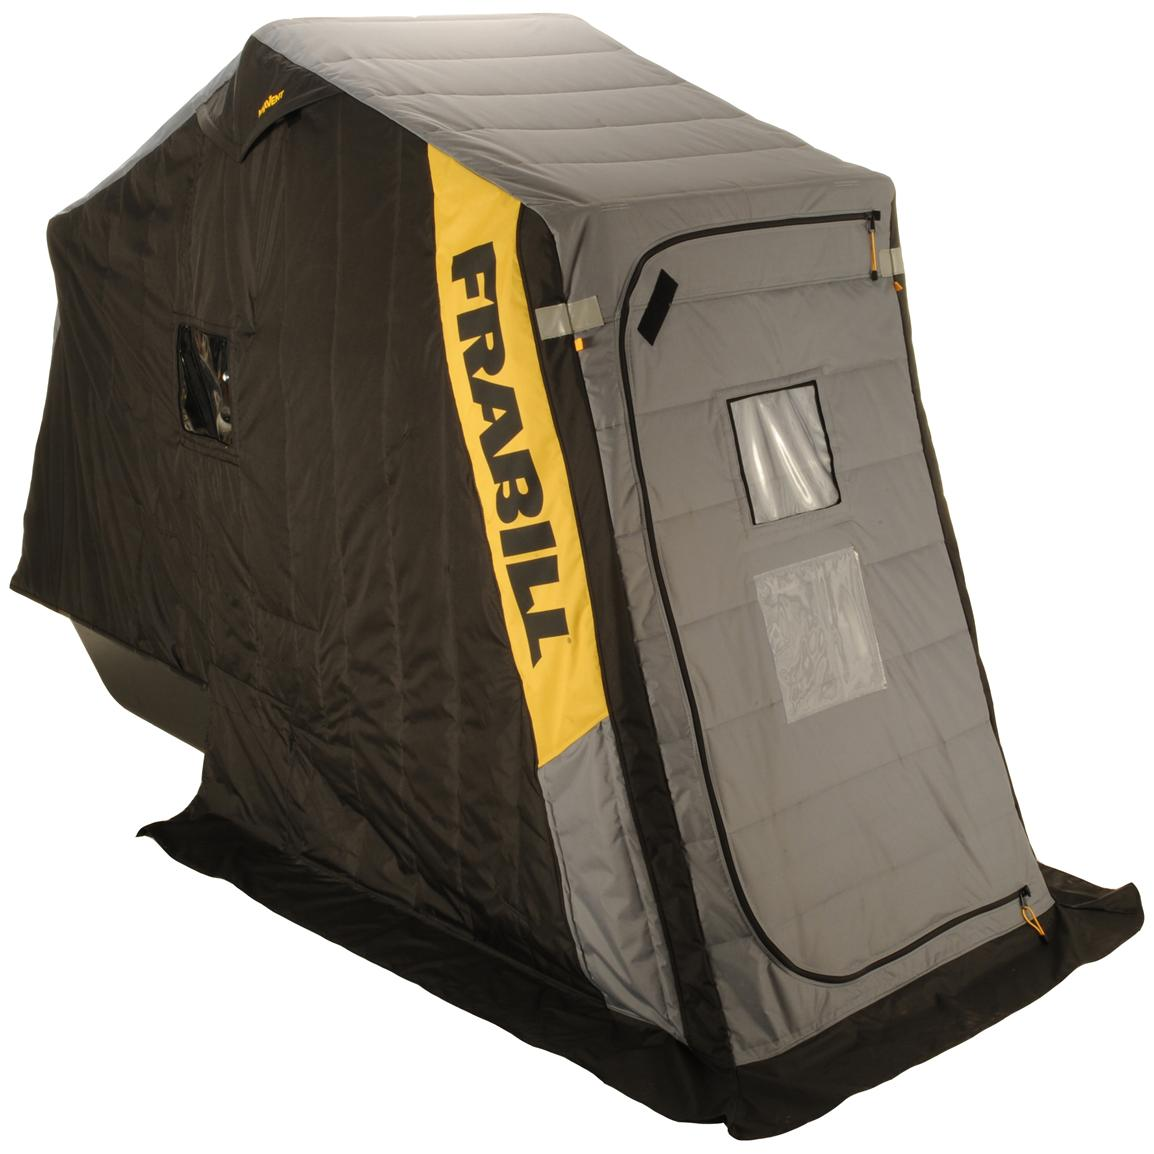 Frabill® R2-Tec Thermal Commando Ice Shelter